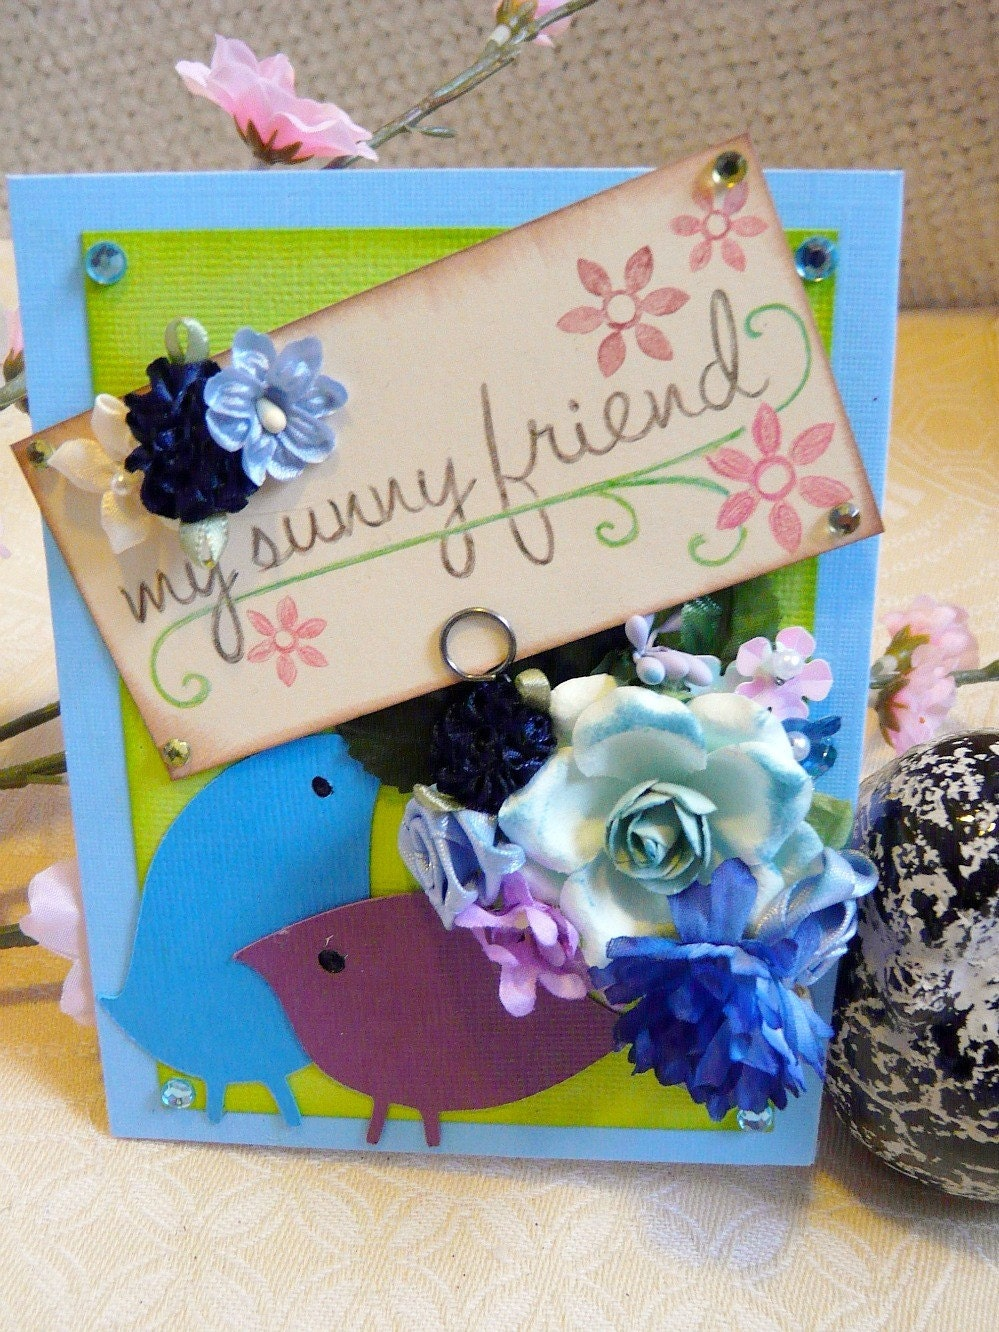 My Sunny Friend - Everyday Spring OOAK Shbby Chic Card - Purple and Blue Birds - Flowers, Gems, Stamped, Blue Card - Envelope